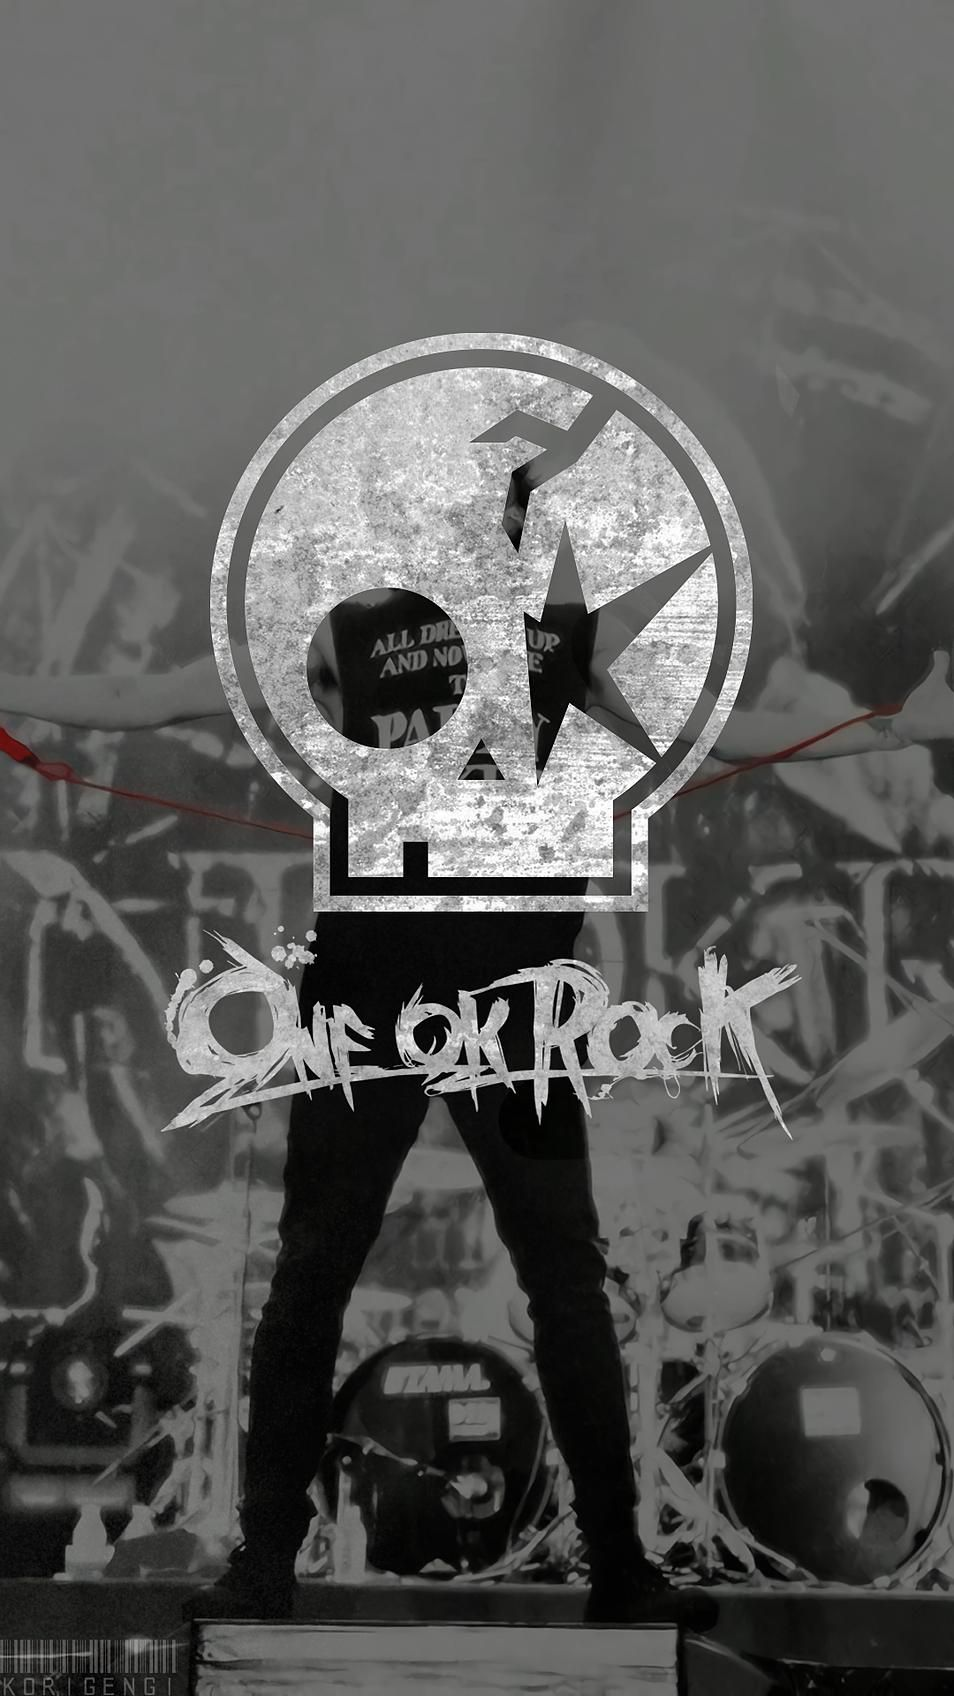 One Ok Rock Korigengi Anime Wallpaper Hd Source One Ok Rock Rock Background Japanese Artists